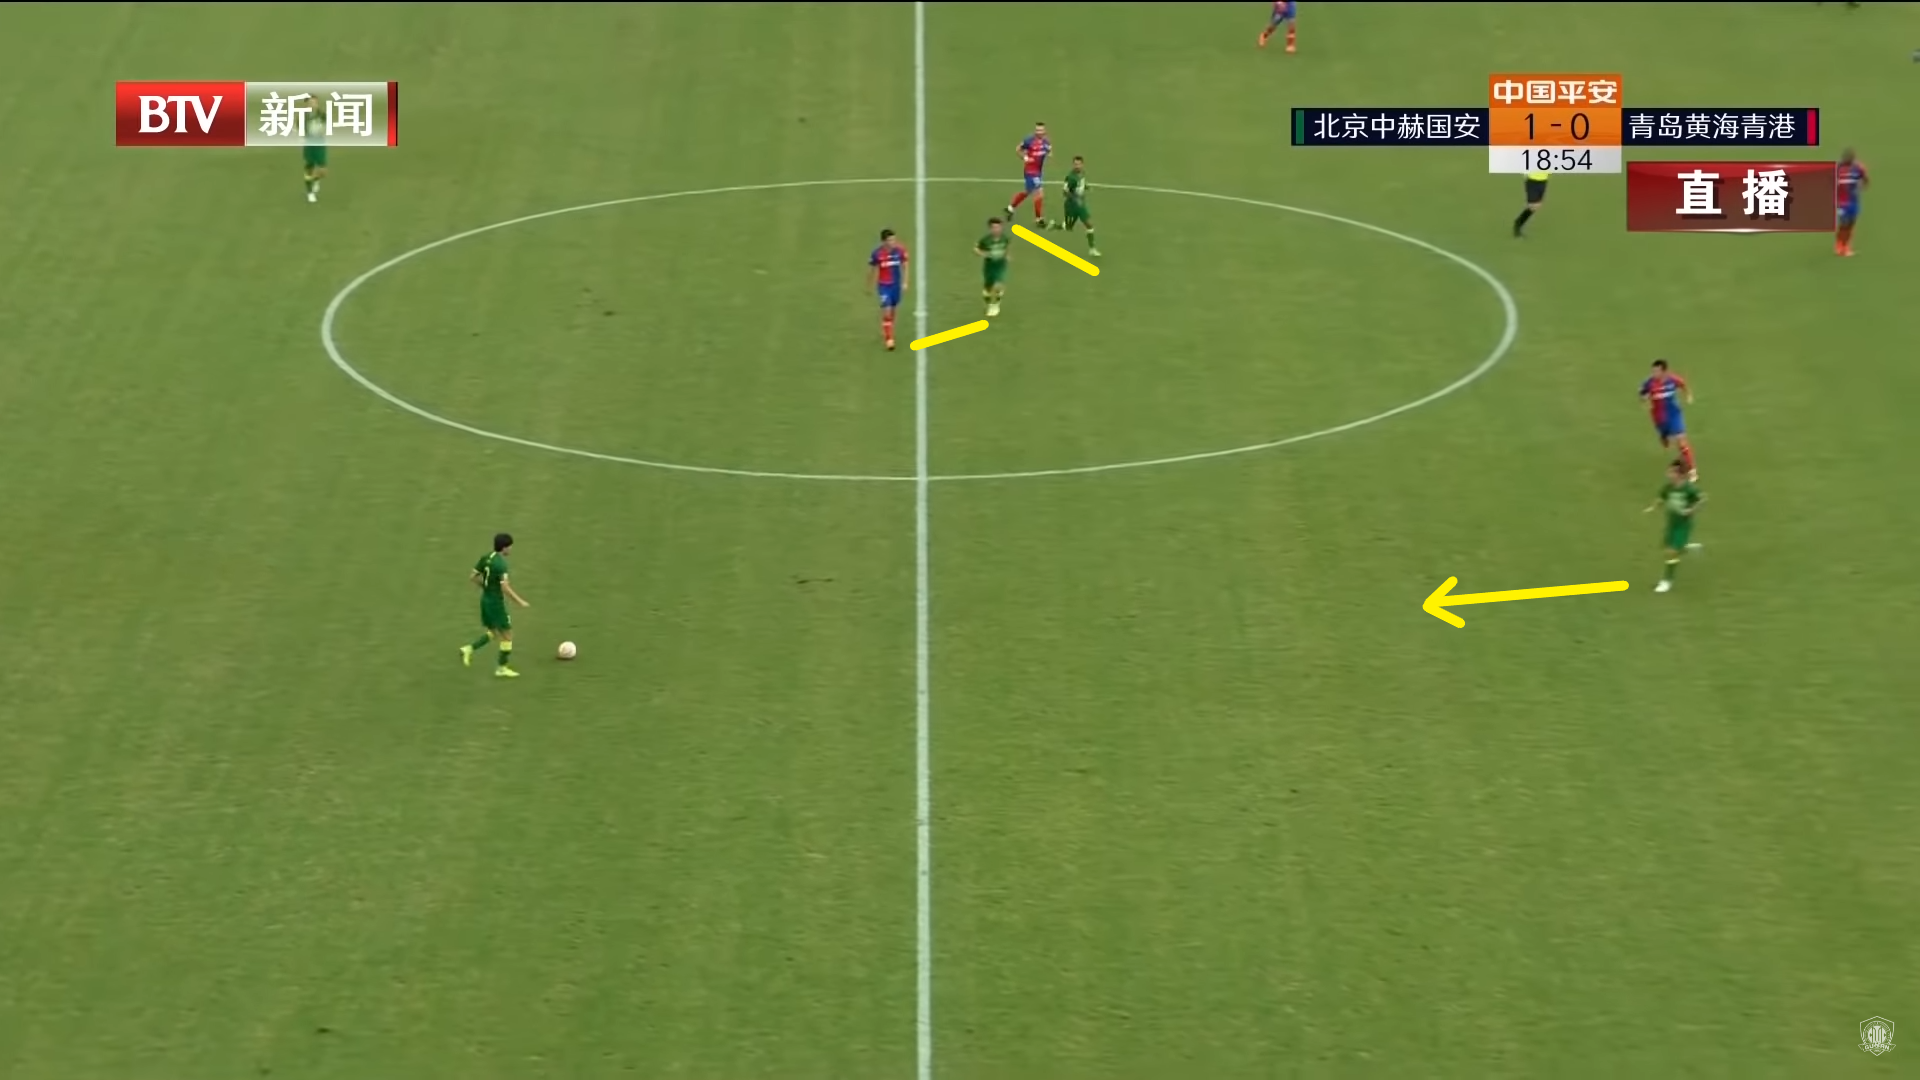 Chinese Super League 2020: Beijing Guoan vs Qingdao Huanghai - tactical analysis